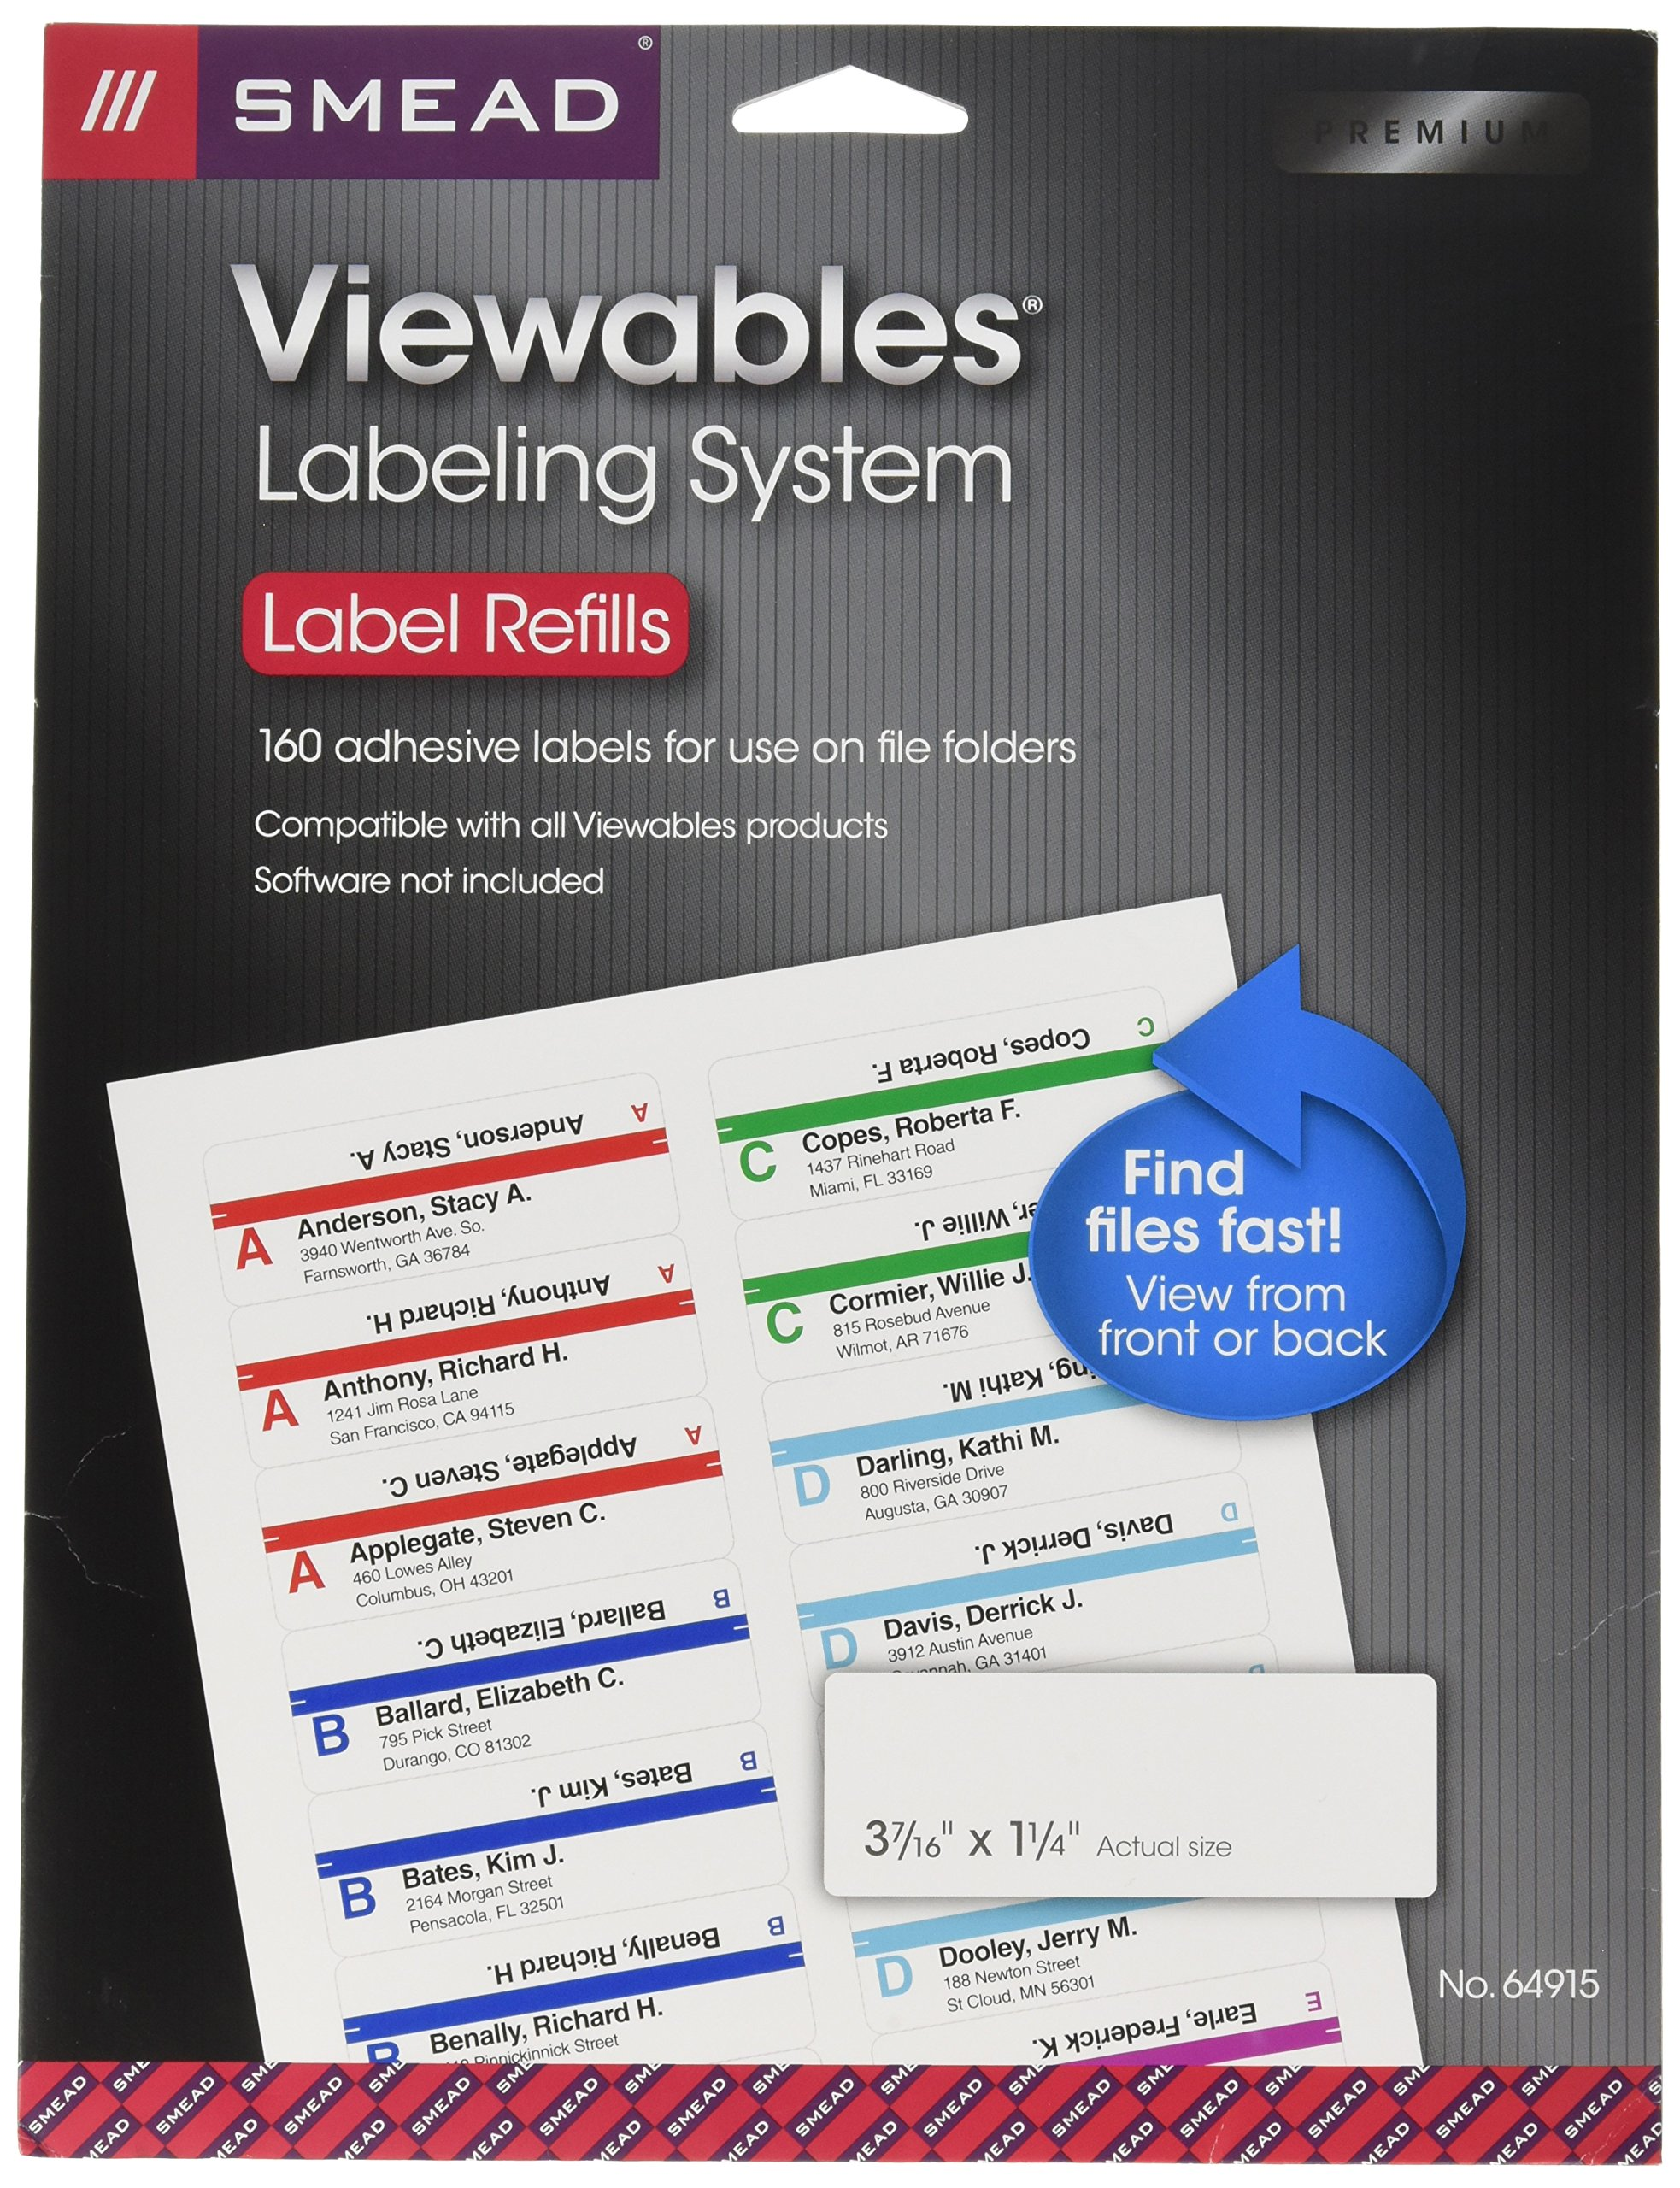 SMD64915 - Smead Viewables Color Labeling System by Smead